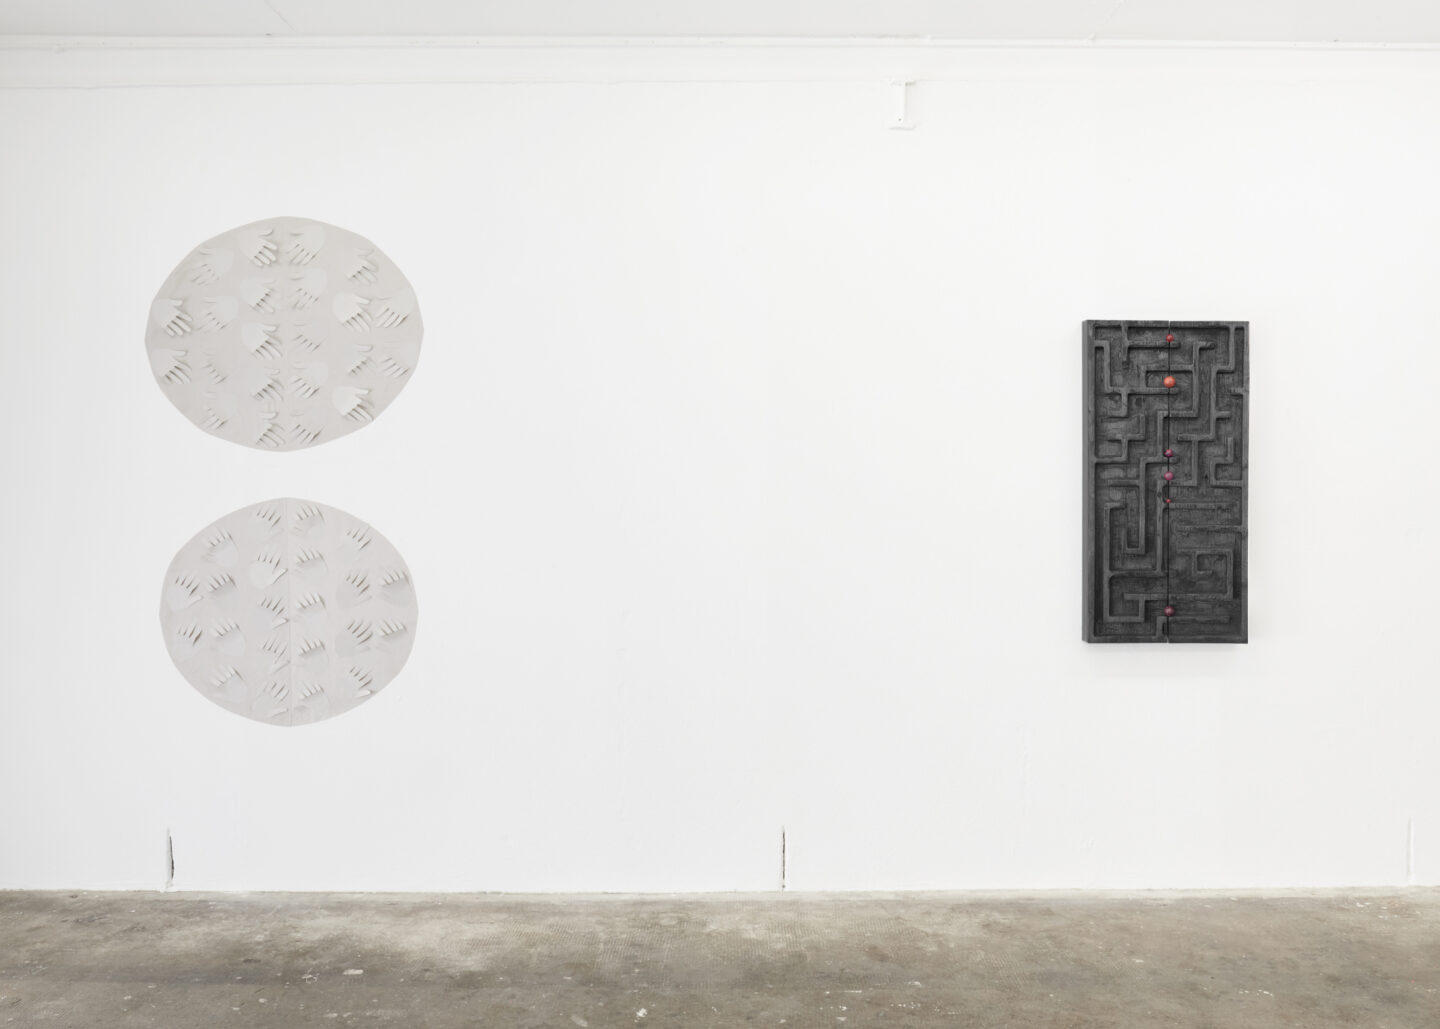 Exhibition View Groupshow «Either it is raining or it is not (at a particular space and time)» at WallRiss, Fribourg, 2019 / Photo: Guillaume Baeriswyl